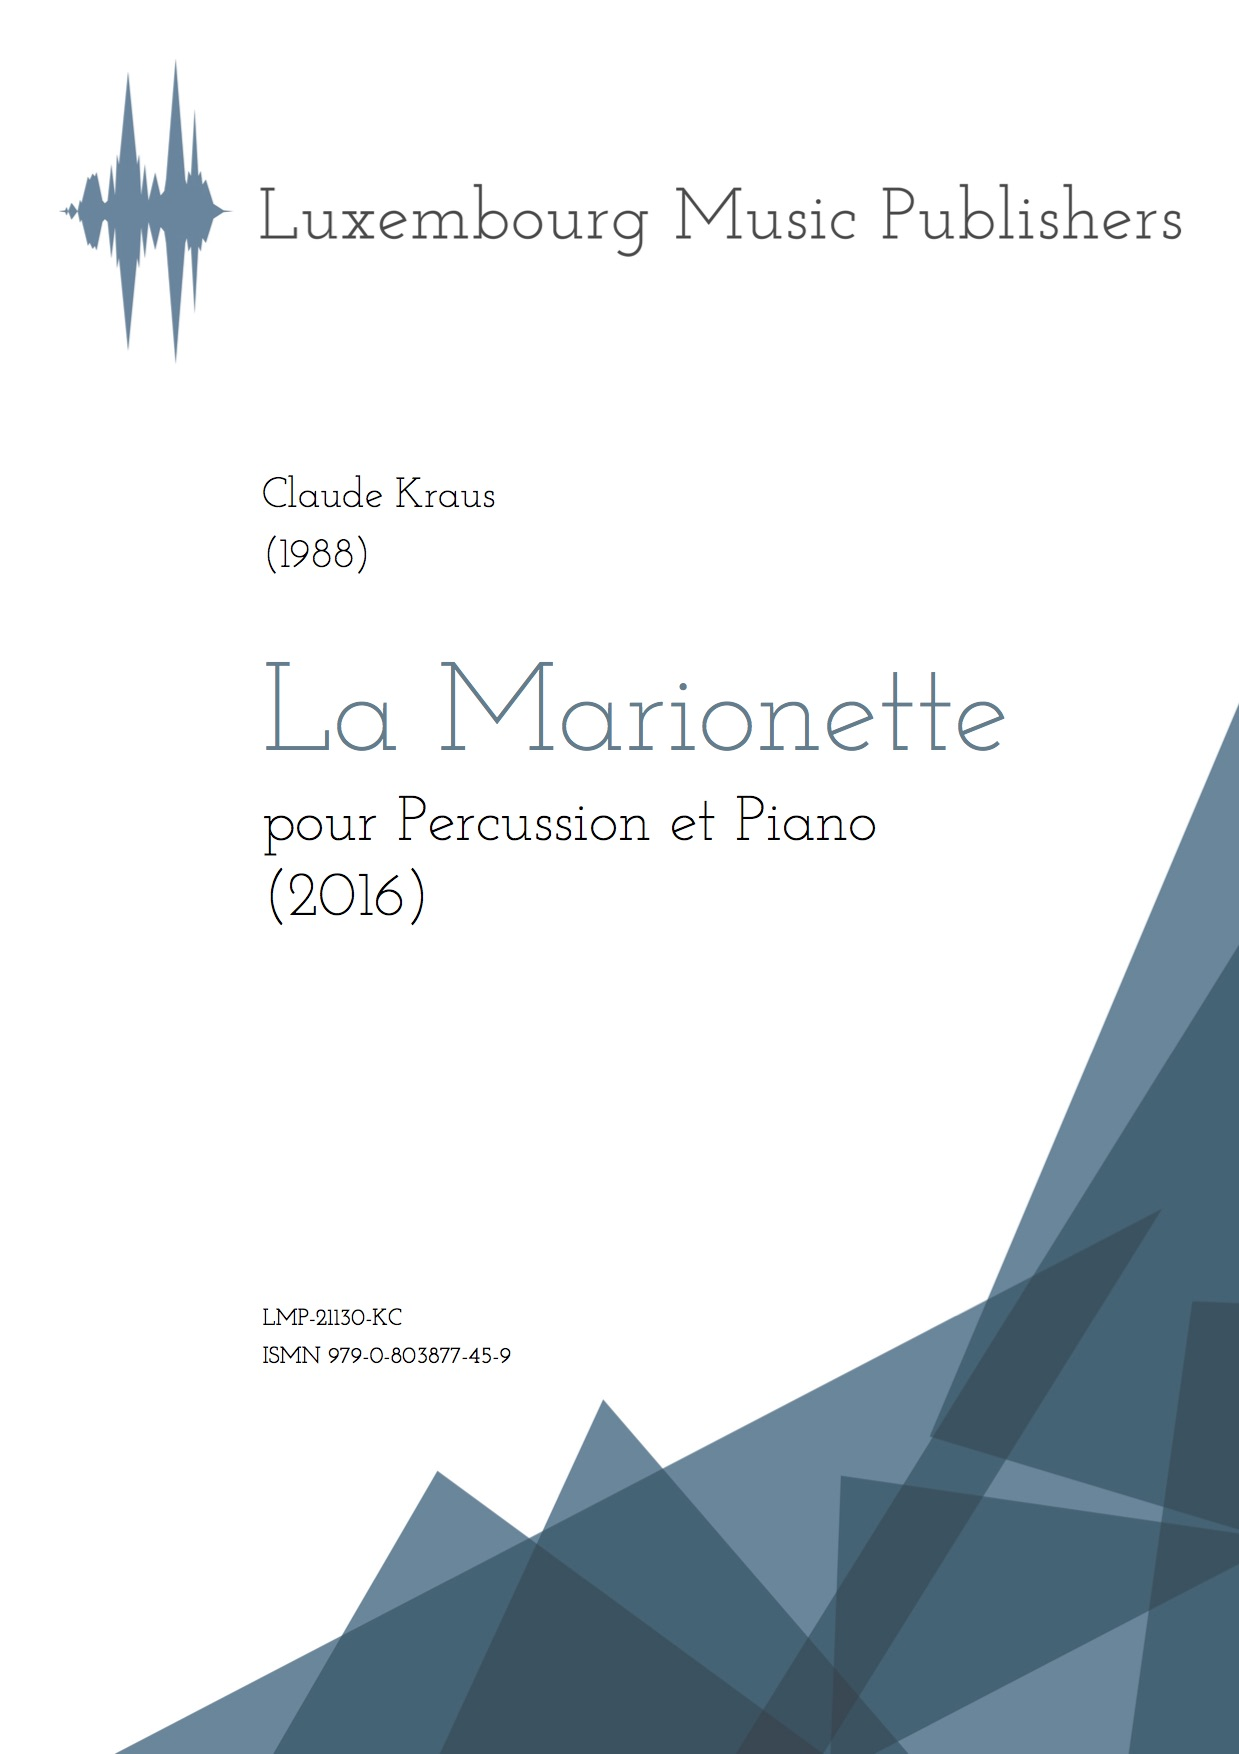 La Marionette. Sheet Music by Claude Kraus, composer. Music for percussion and piano. Contemporary chamber music for percussion and piano.